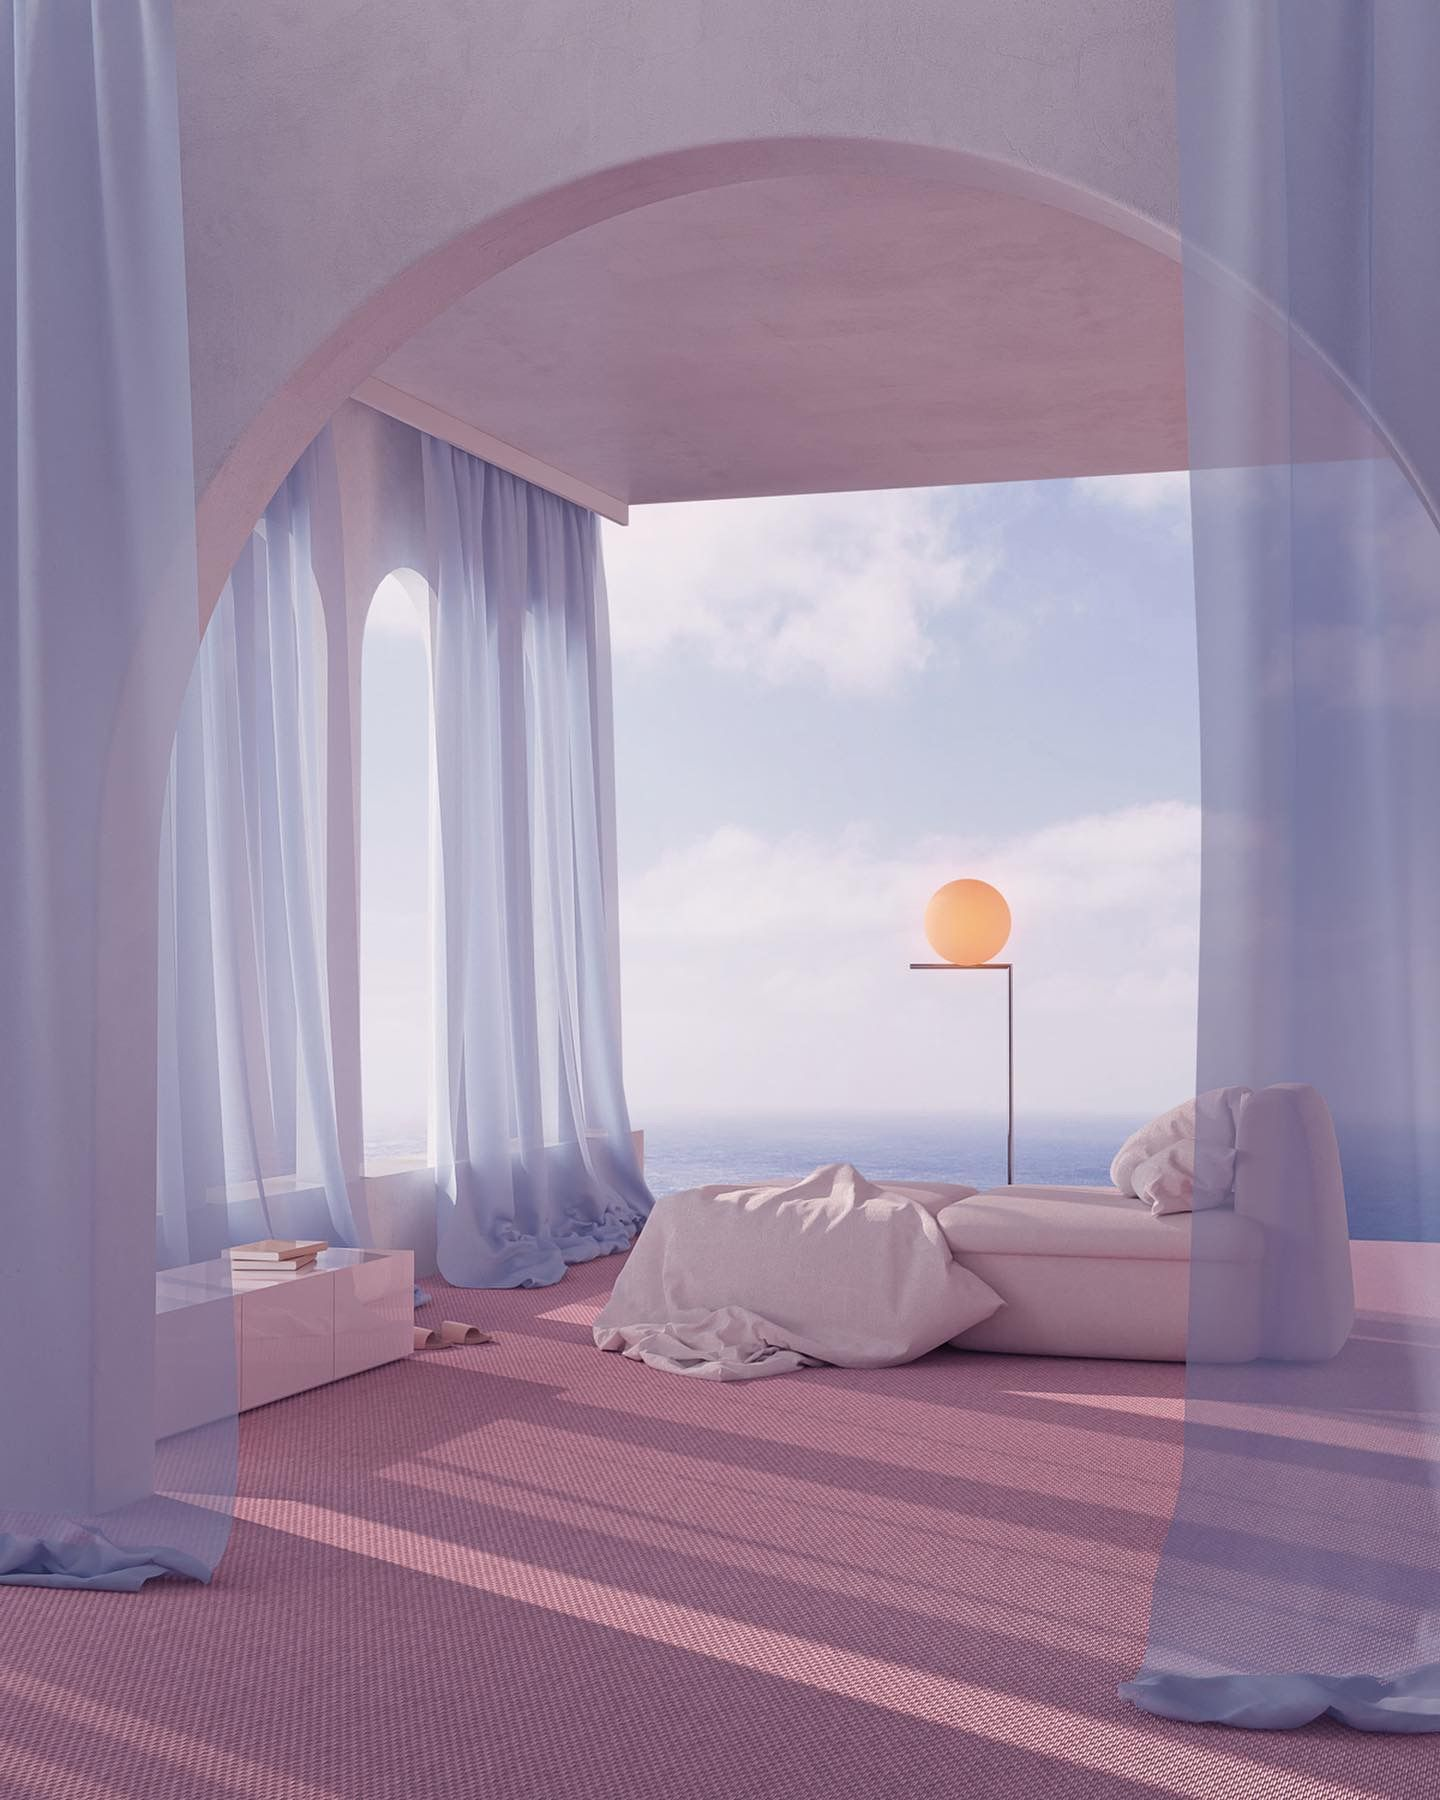 Pink And Powder Blue Luxury Interior Inspo Aesthetic Rooms House Design Dream Rooms Luxury pink aesthetic room